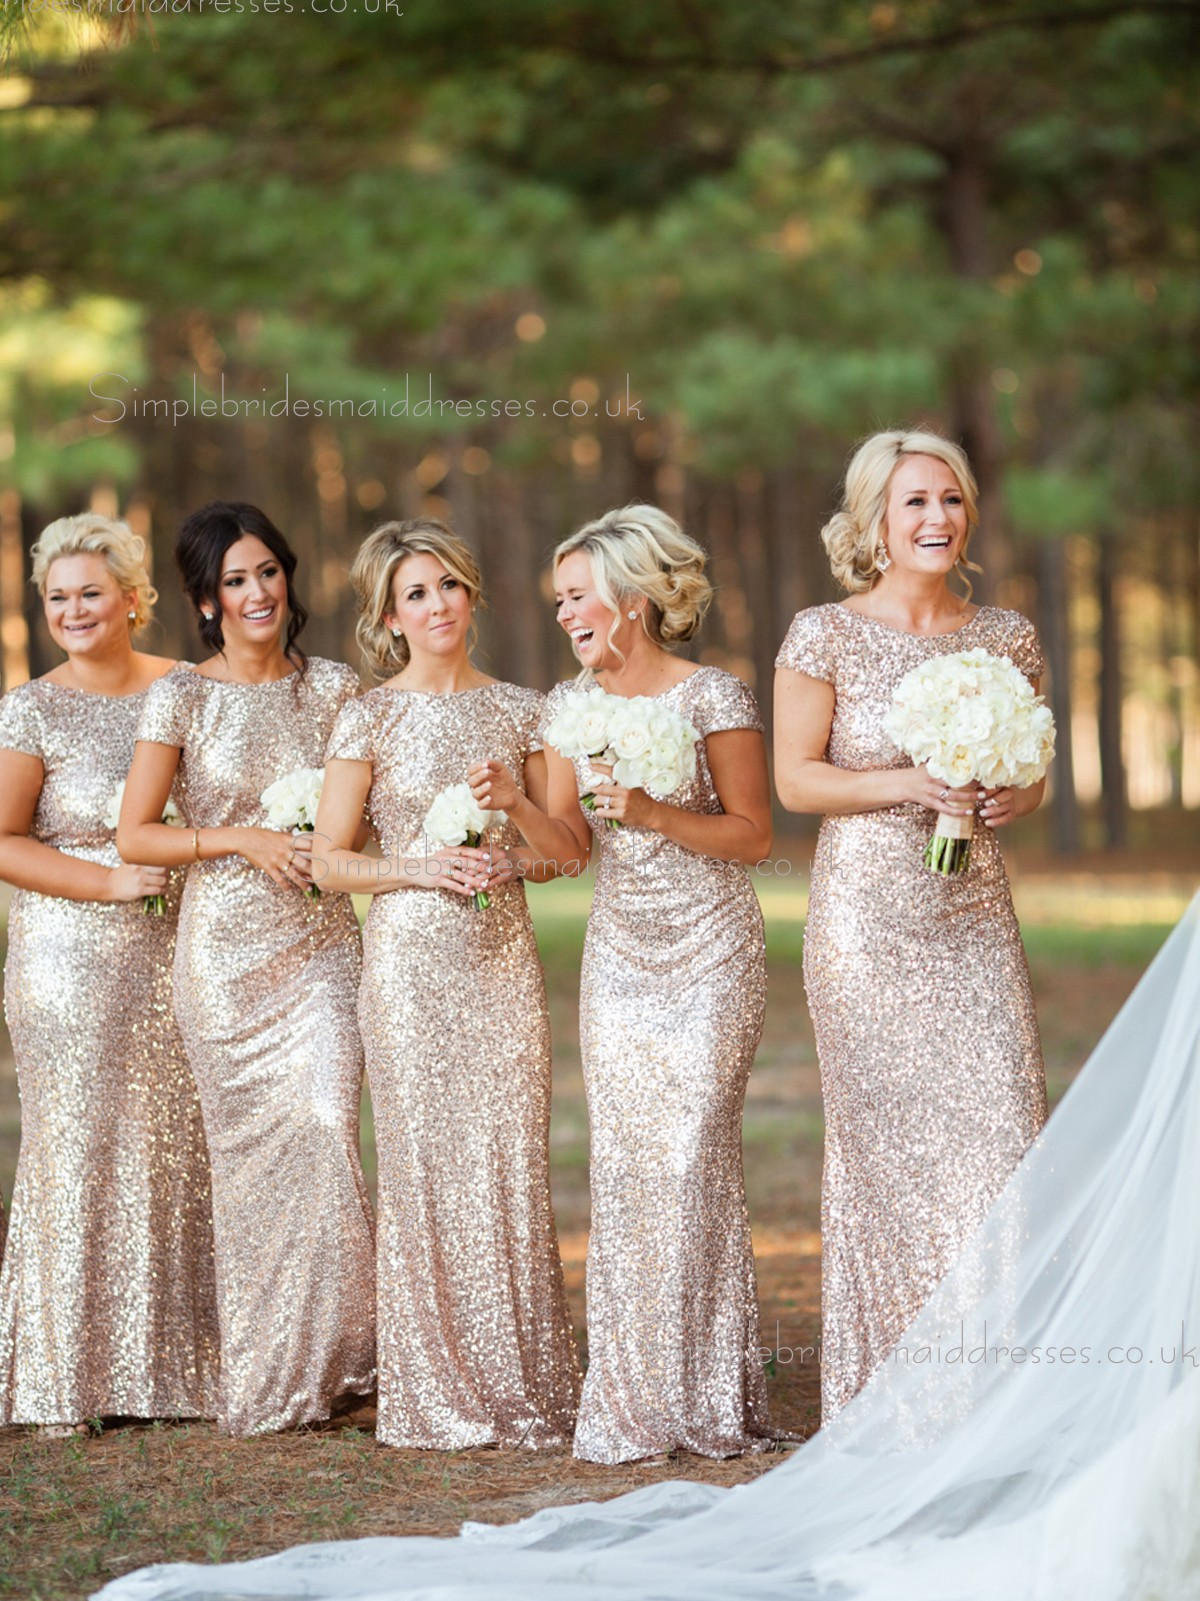 Bridesmaid dresses online uk cheap bridesmaid dresses hot sale sparkly sequin mermaid long gold champagne rose gold bridesmaid dress uk ombrellifo Images